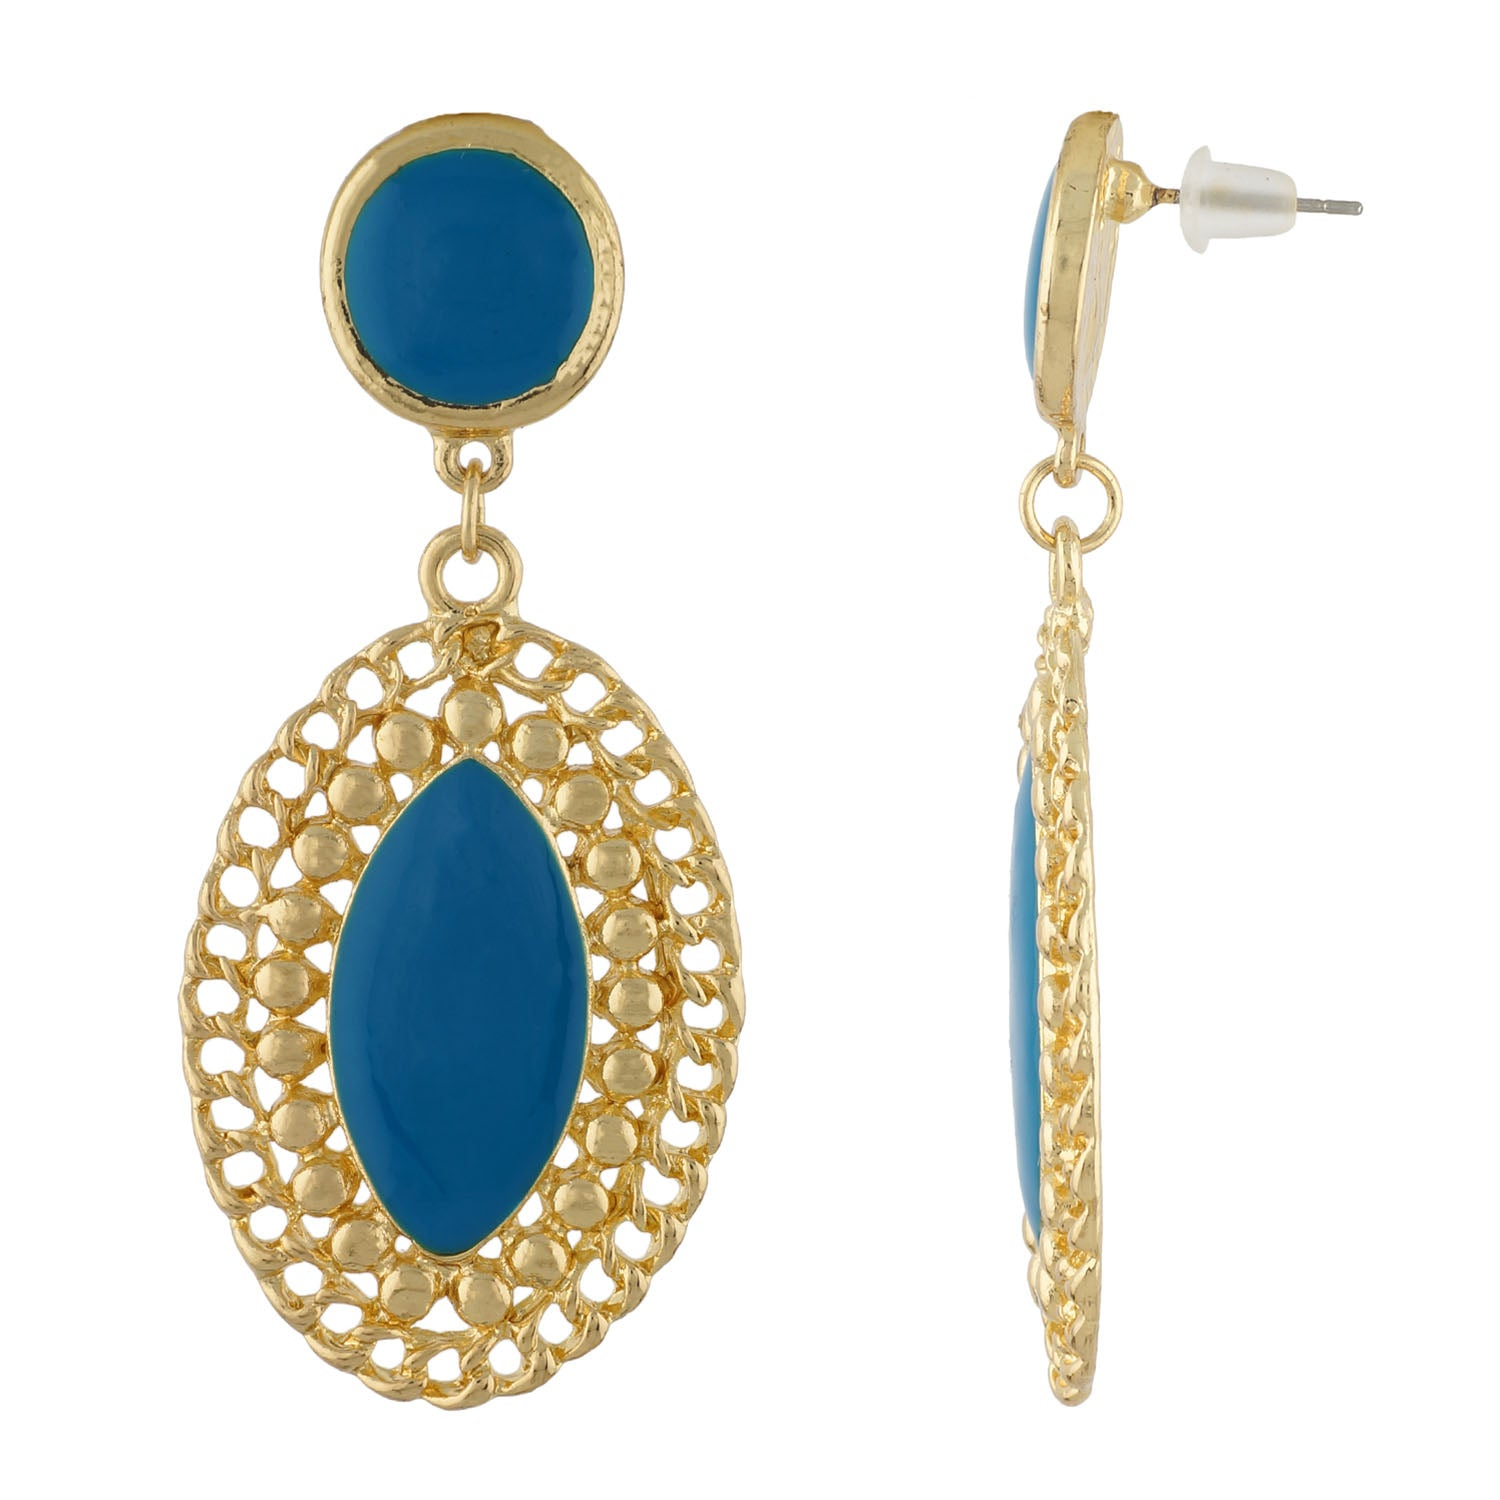 Stylish Blue and Gold Colour Oval Shape Enamel Enhanced Earring for Girls and Women